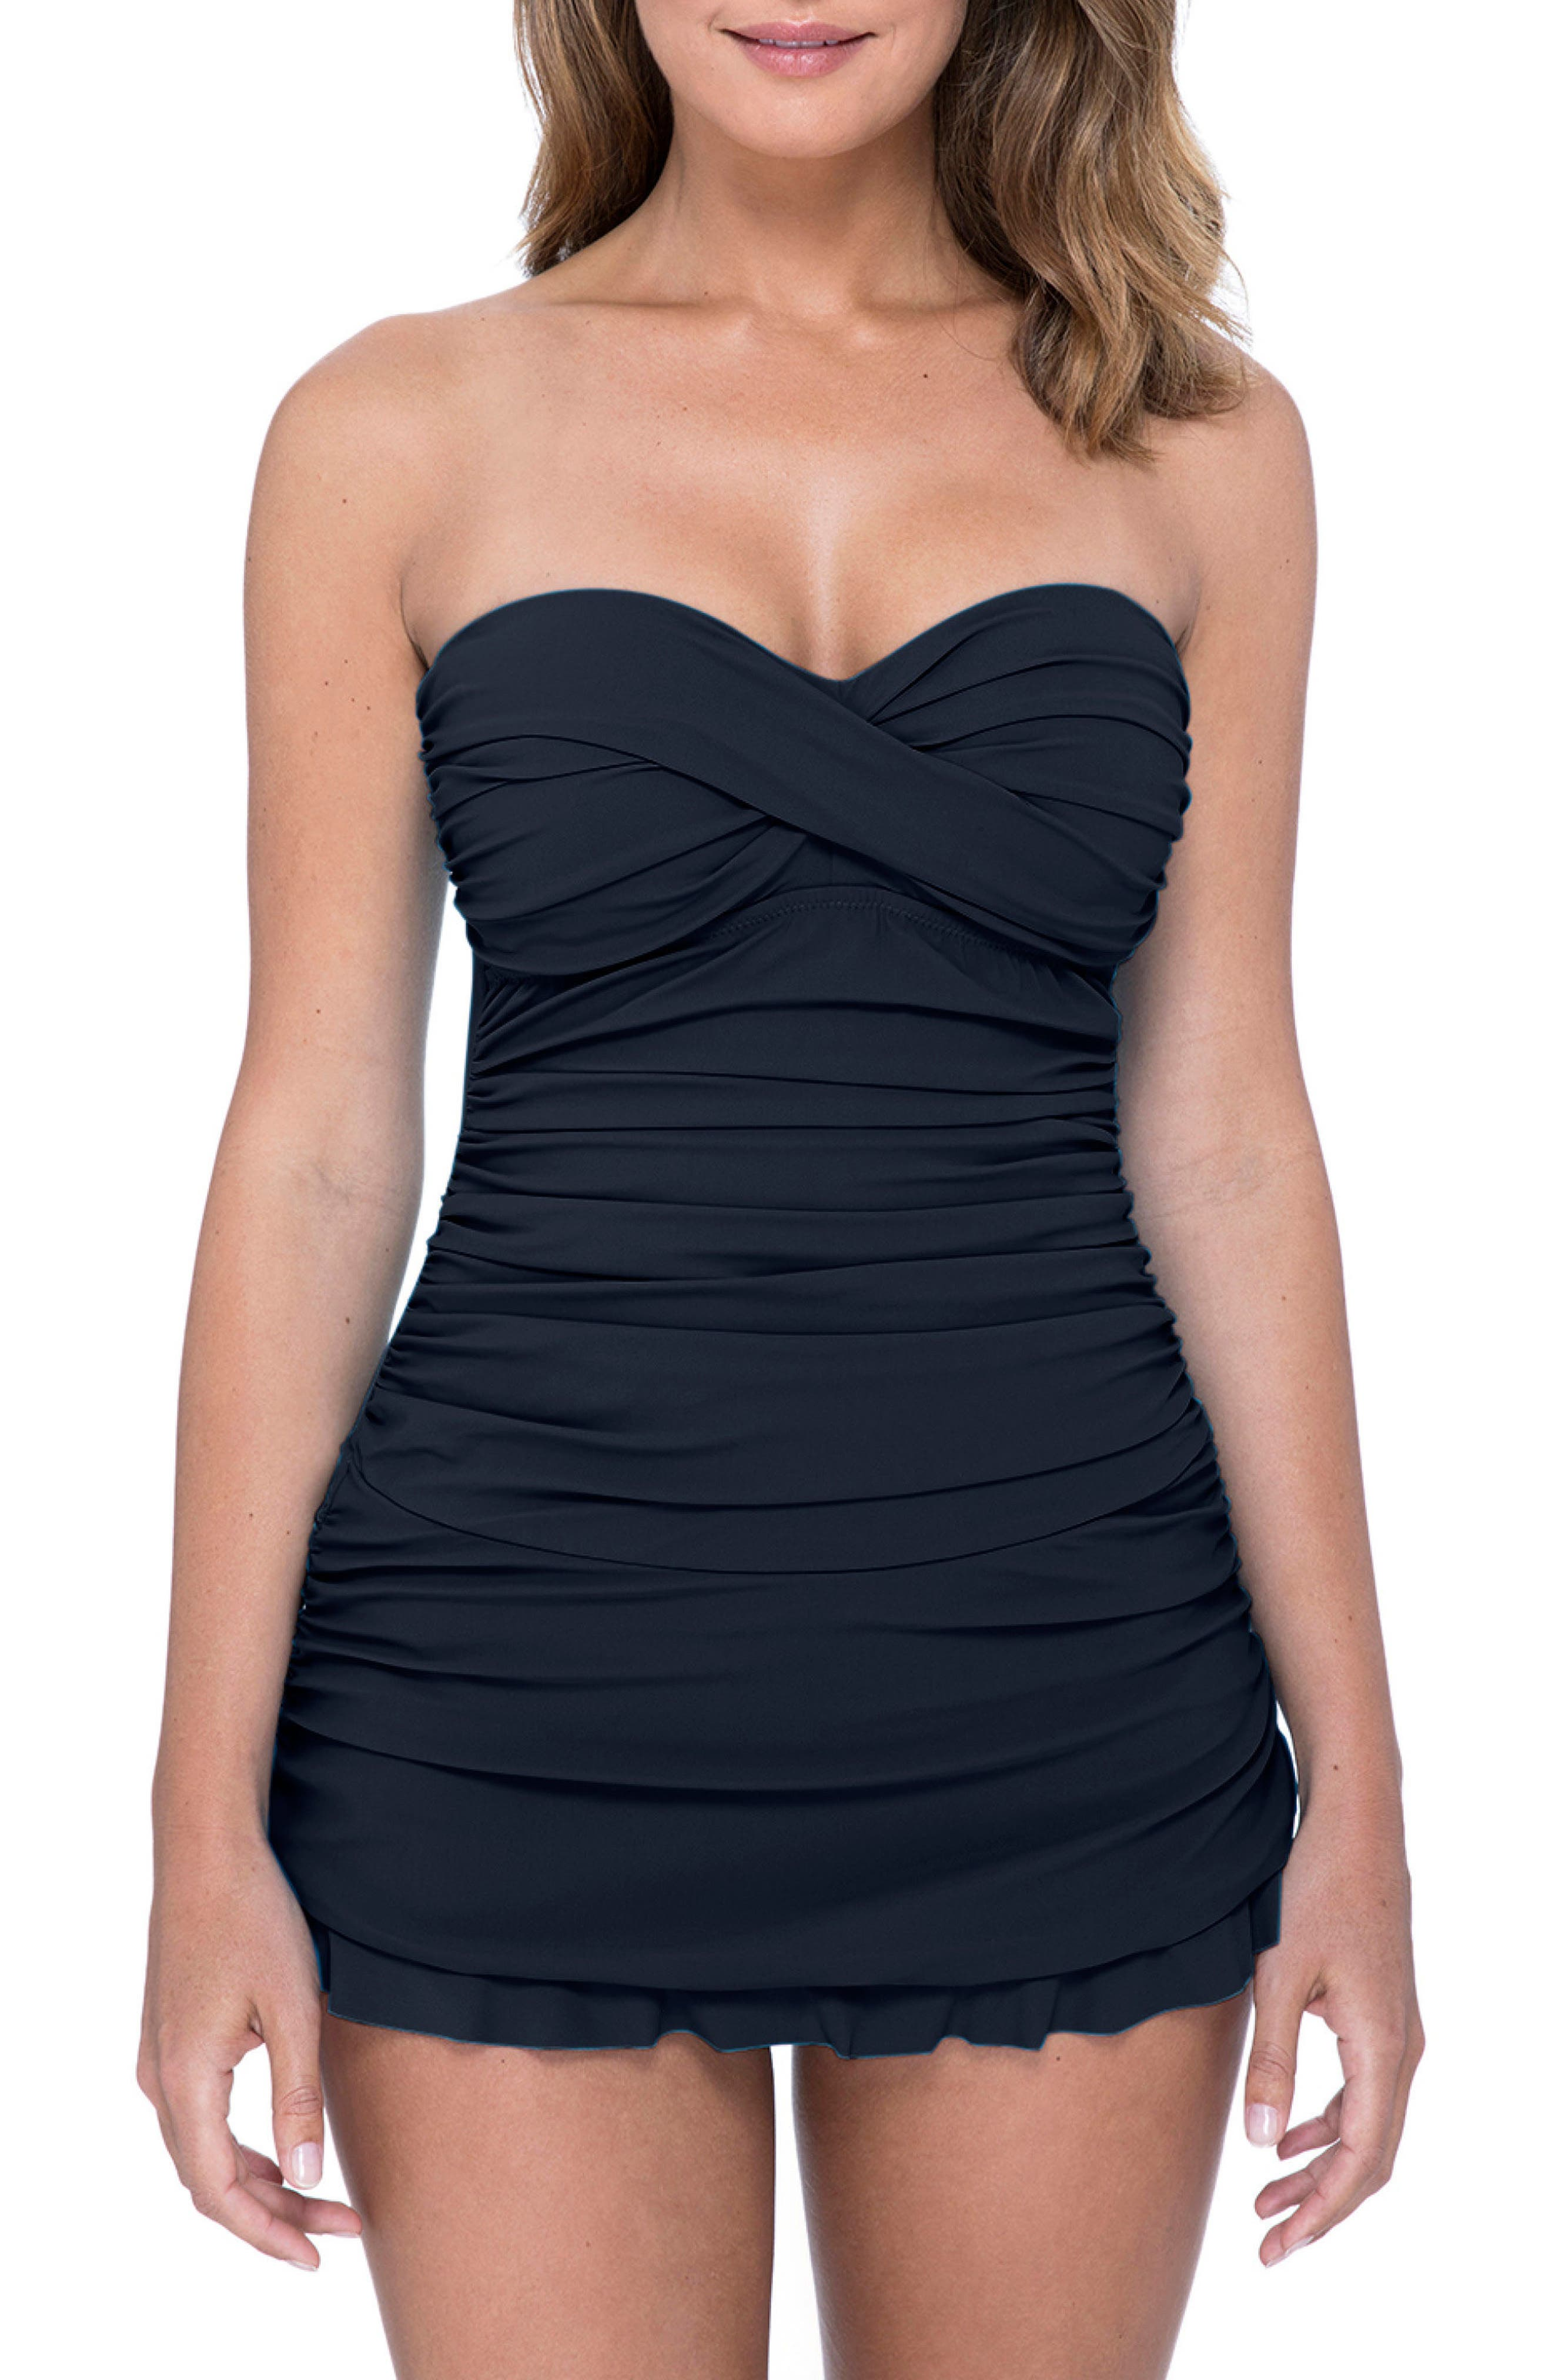 PROFILE BY GOTTEX Tutti Frutti Swim Dress, Main, color, BLACK